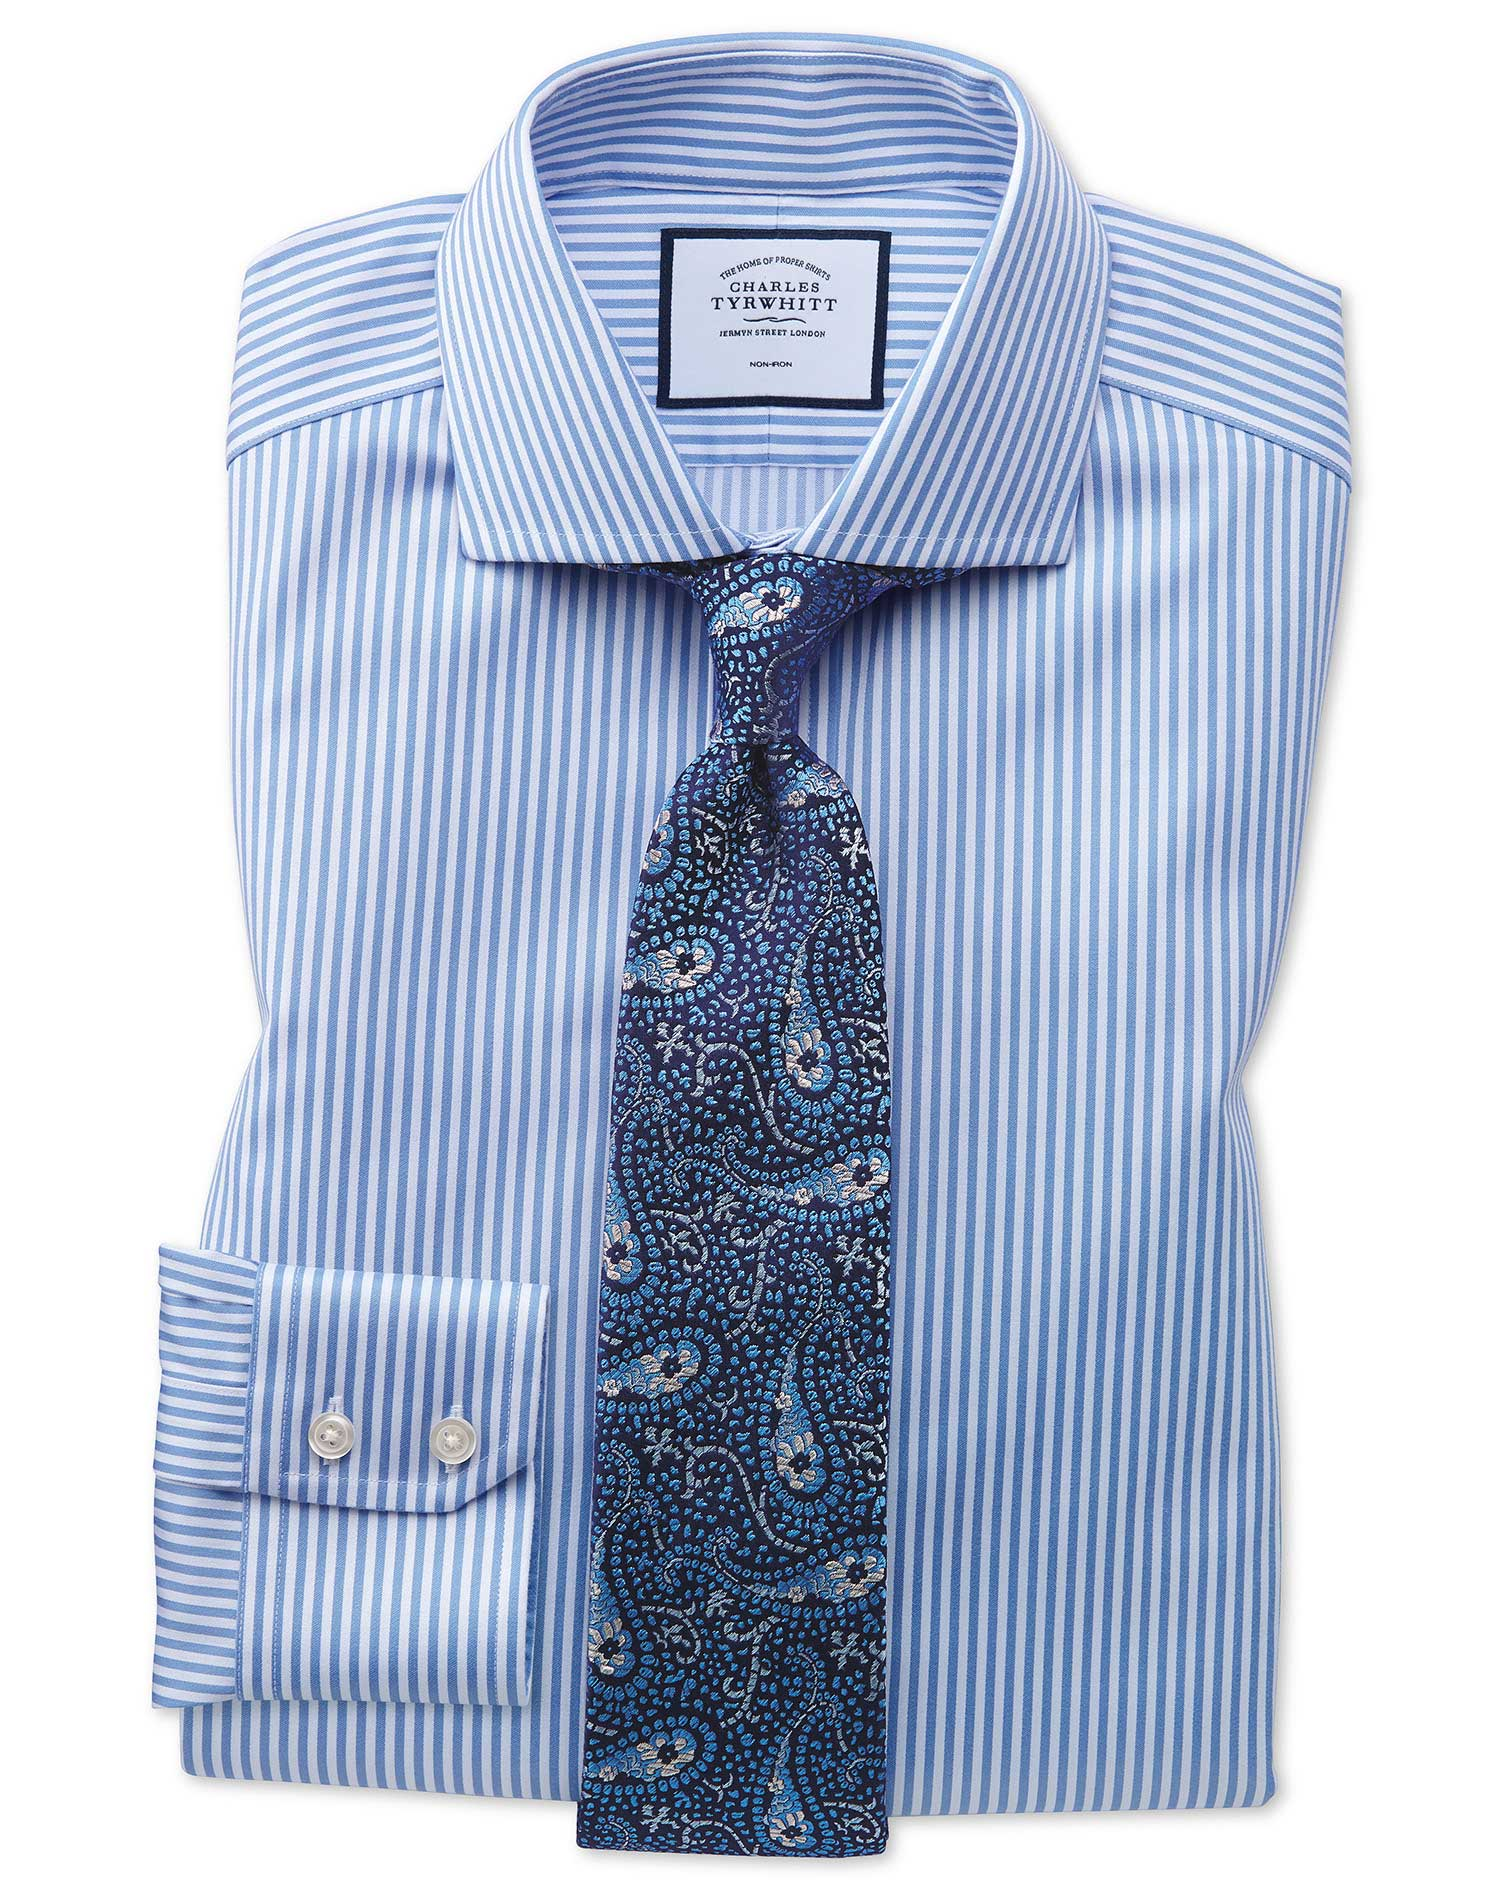 Slim Fit Non-Iron Cutaway Collar Sky Blue Twill Stripe Cotton Formal Shirt Single Cuff Size 17/34 by Charles Tyrwhitt from Charles Tyrwhitt